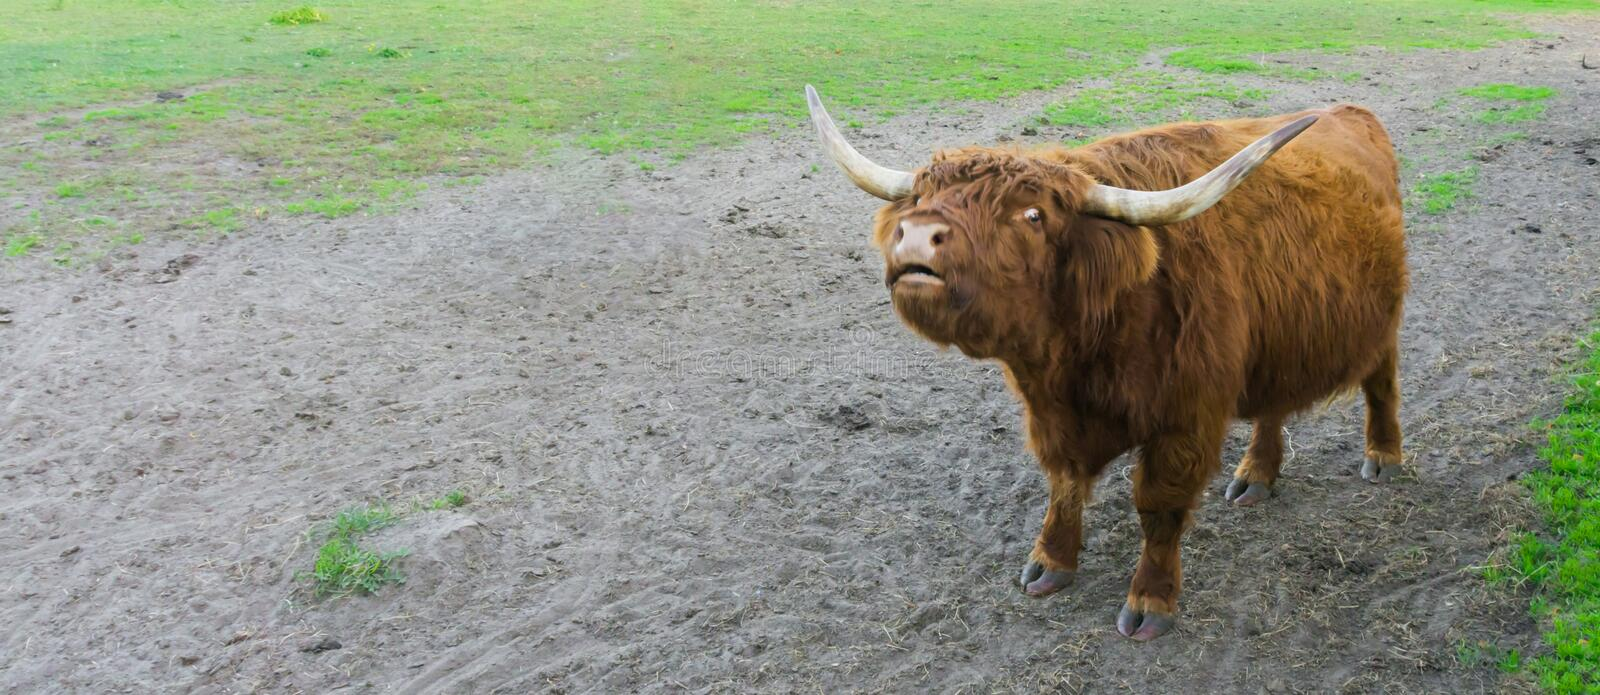 Funny highland cow squinting its eyes, animal making a funny face. A funny highland cow squinting its eyes, animal making a funny face stock photos